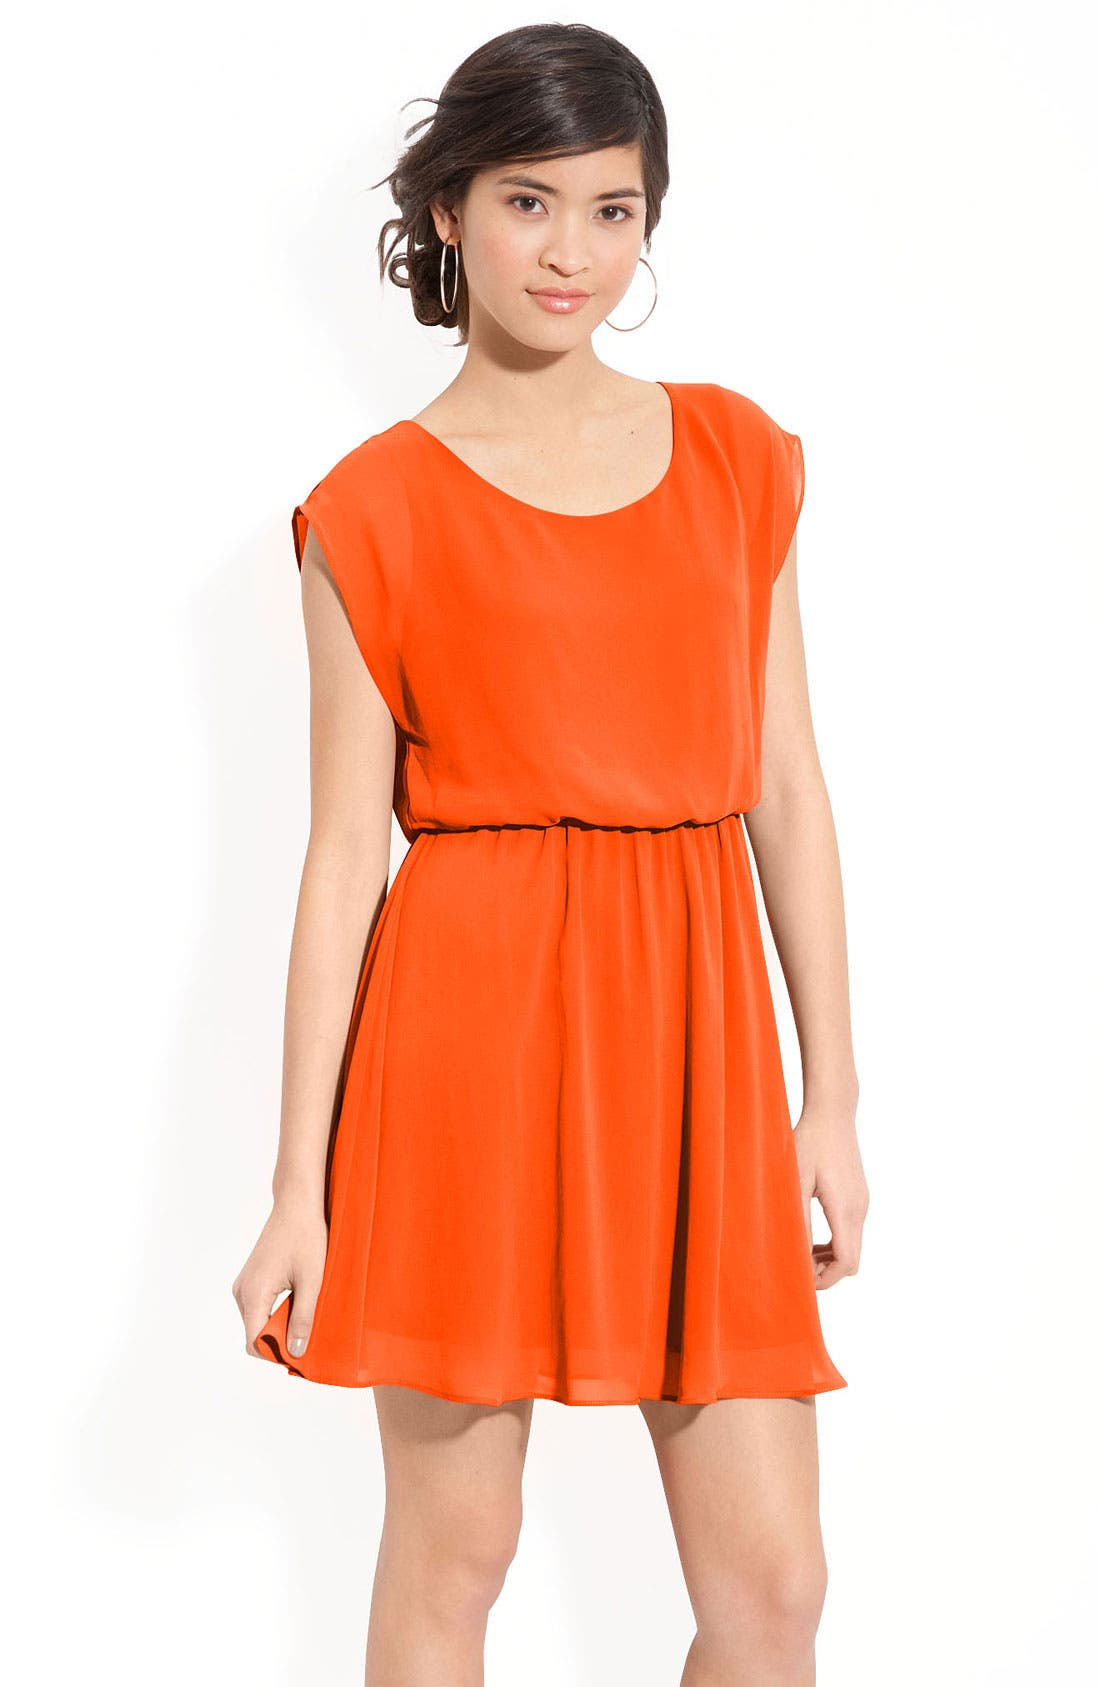 Main Image - Lush 'Harper' Chiffon Dress (Juniors)